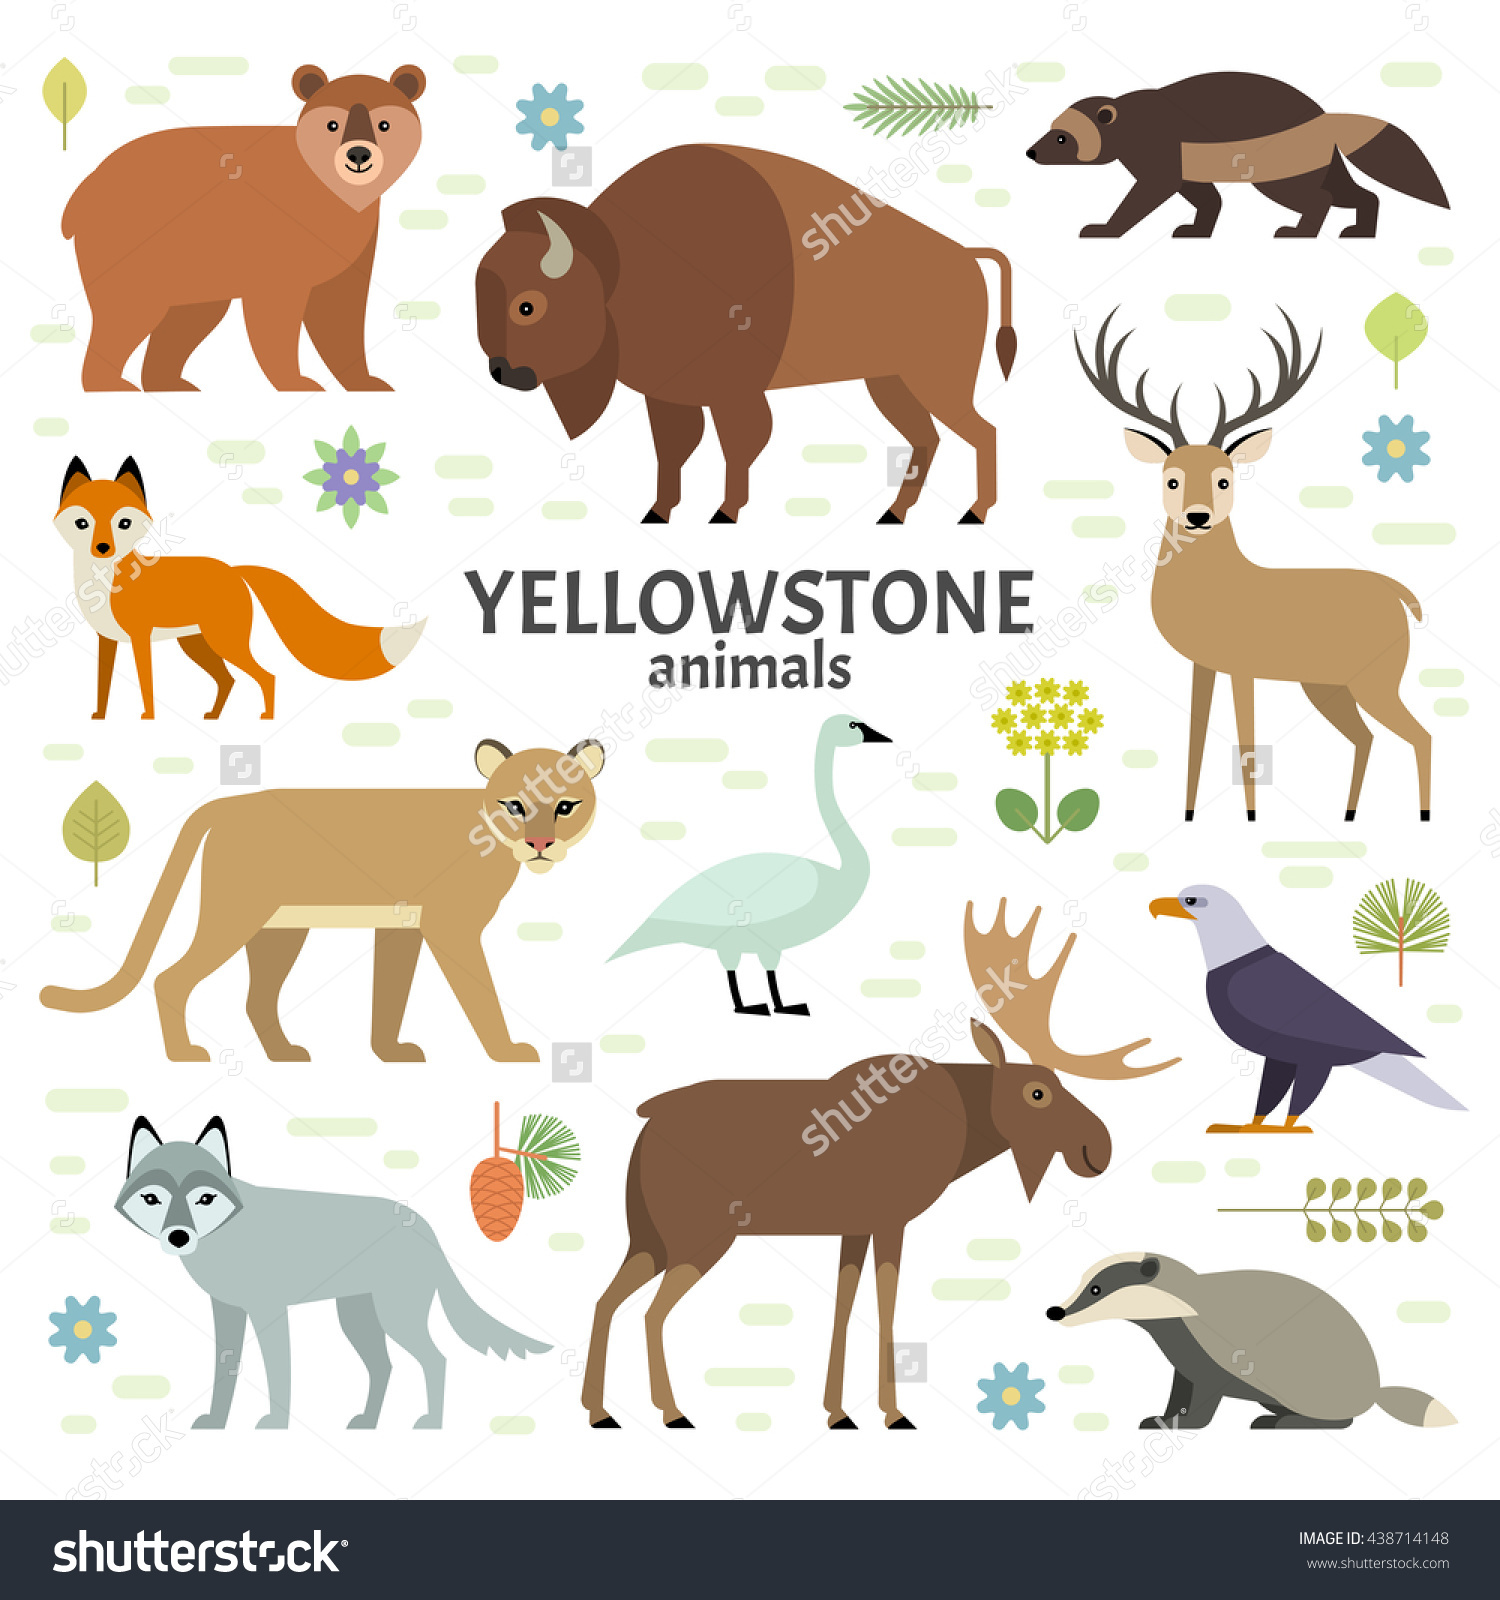 Vector Illustration Yellowstone National Park Animals Stock Vector.